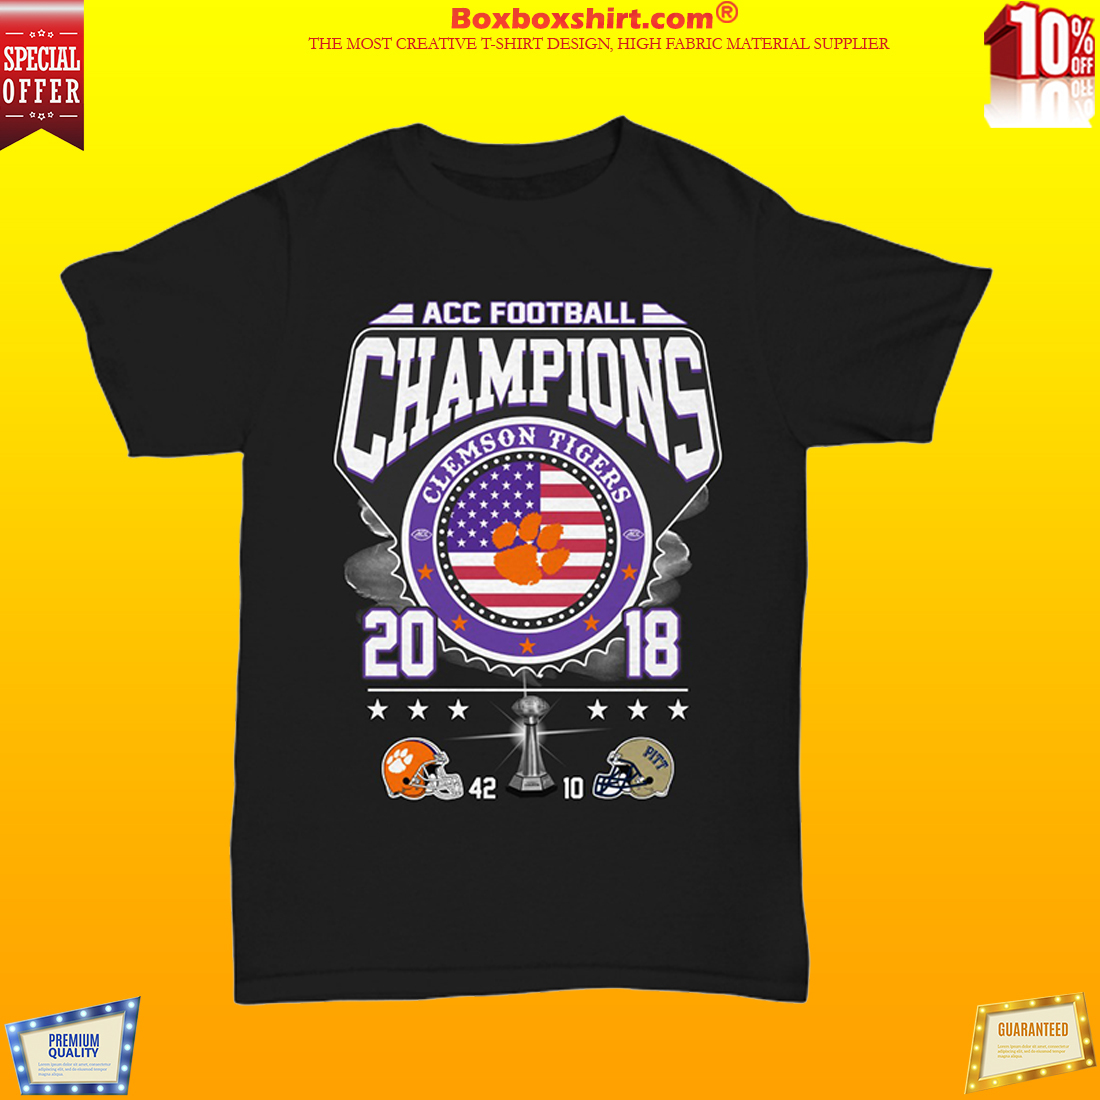 ACC football champion Clemson tigers shirt